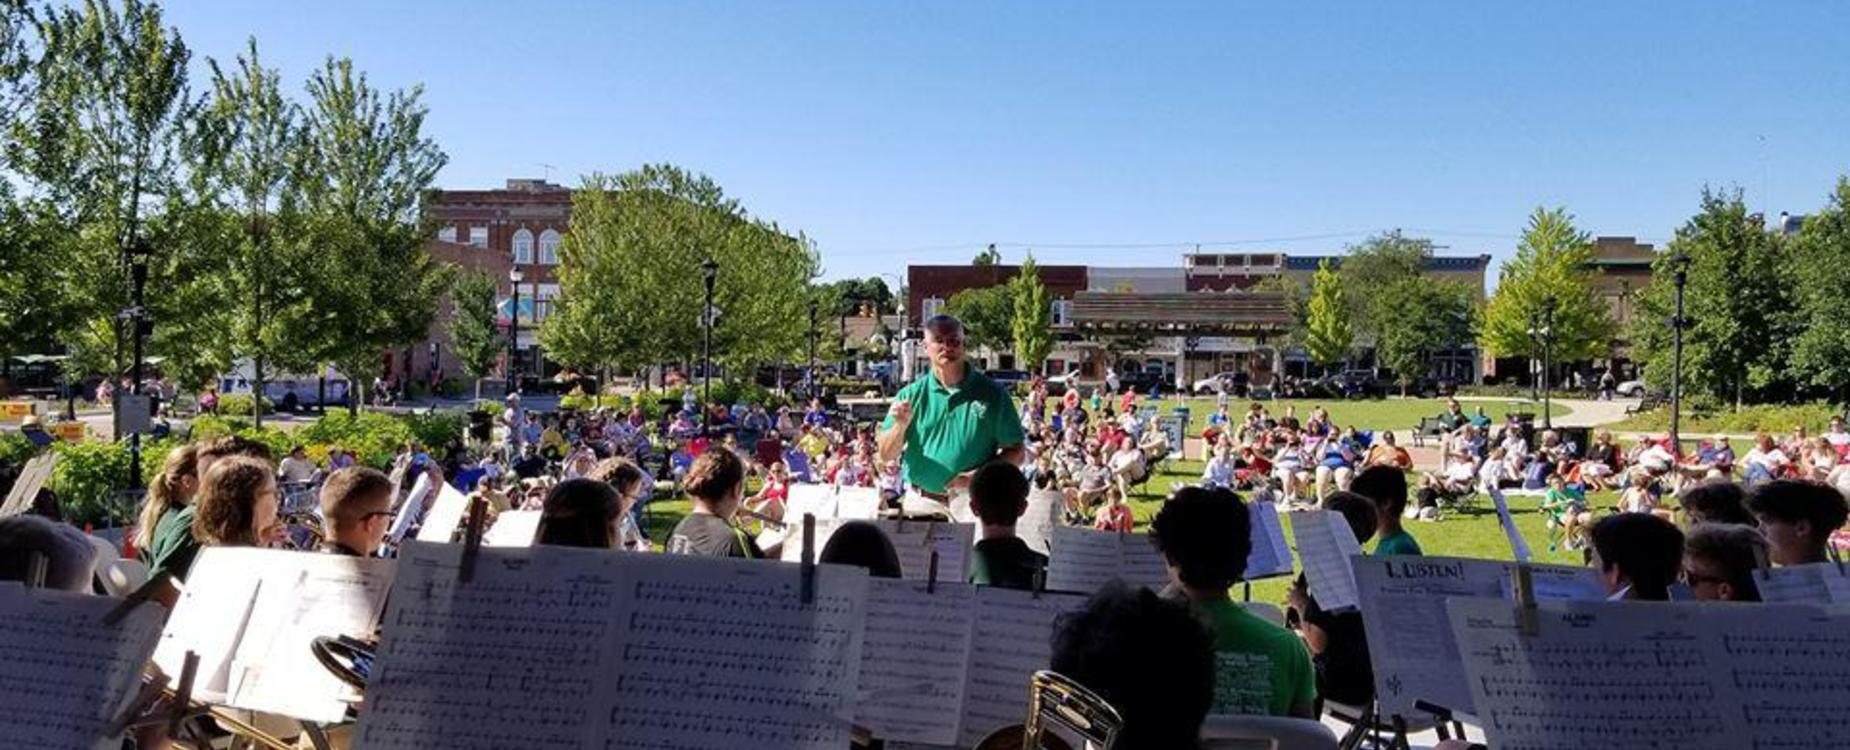 The middle school band performed their summer concert at Central Park Plaza for the community.